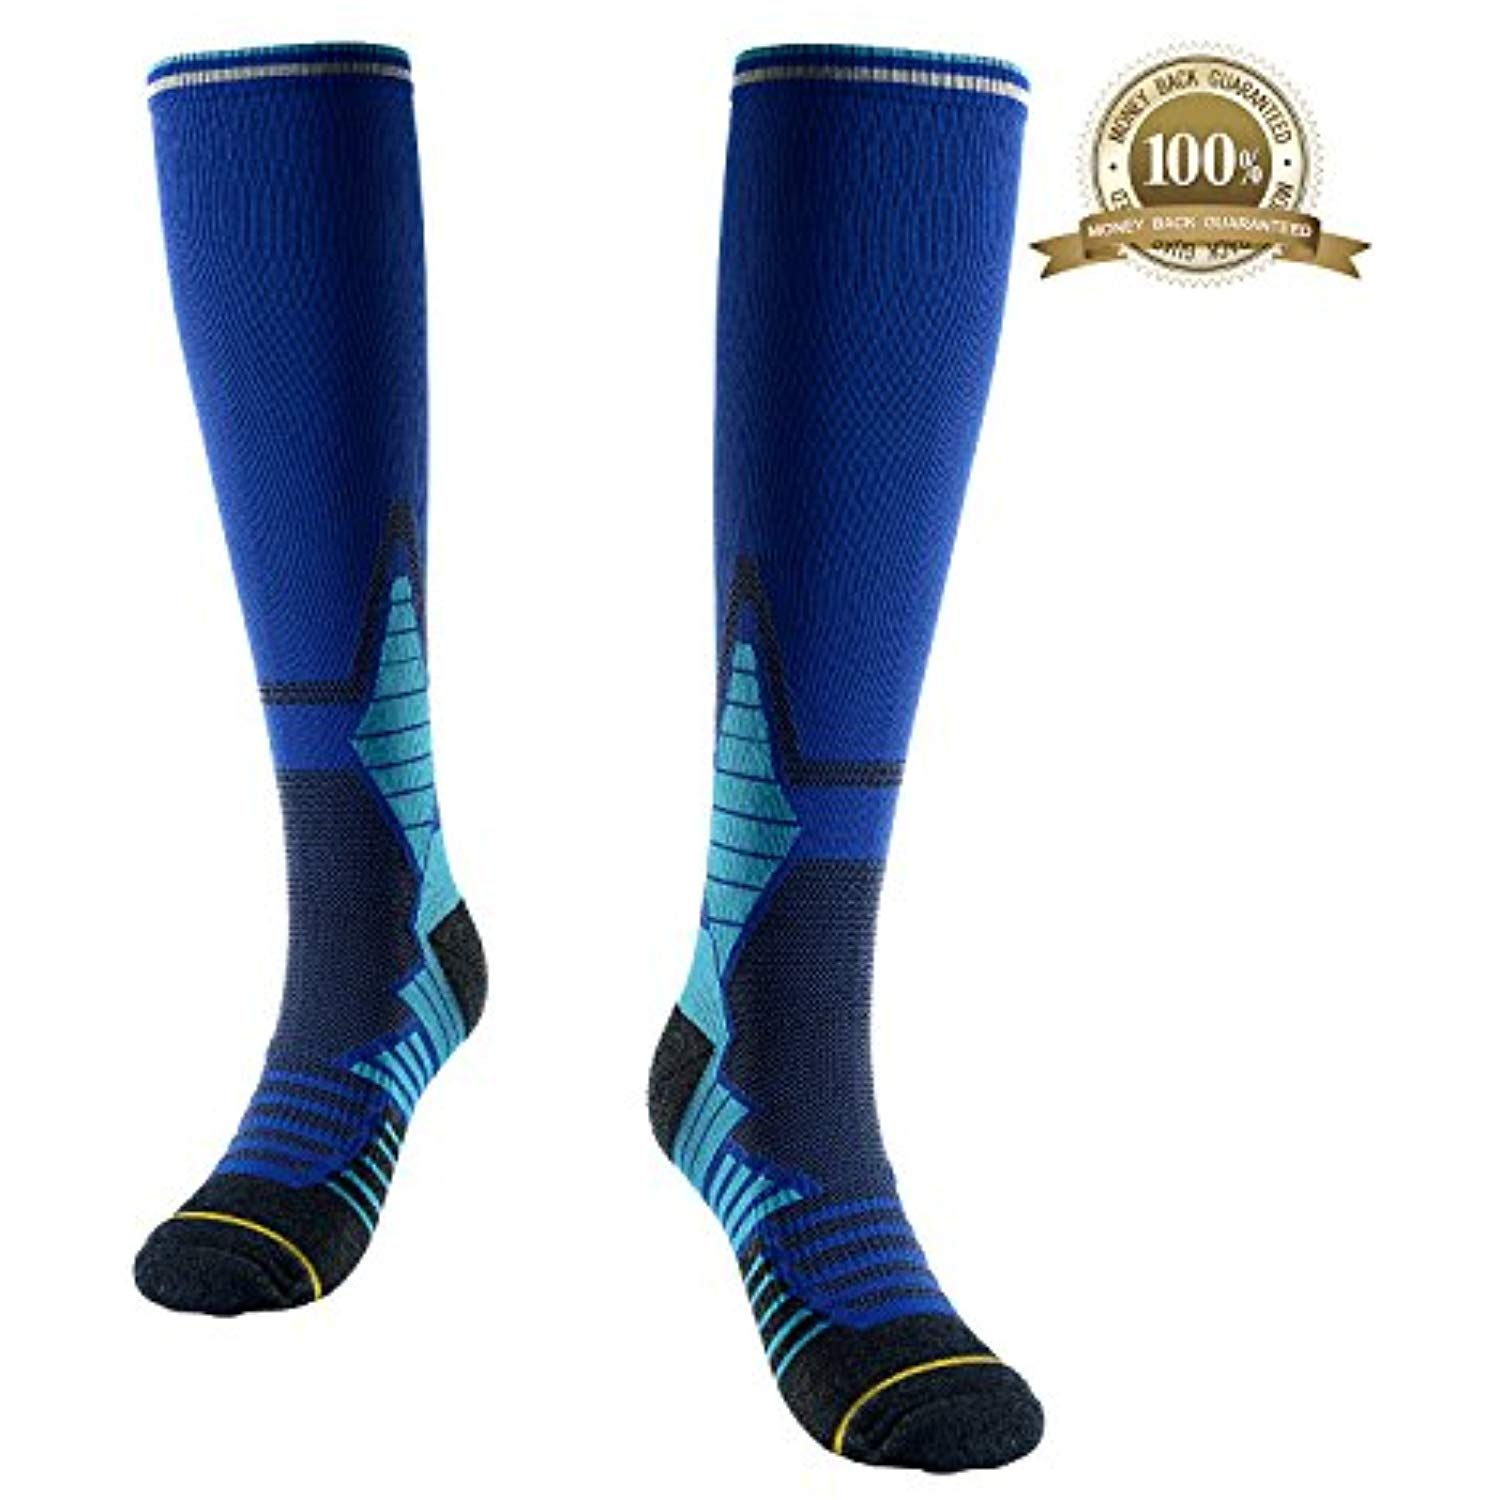 Kunto Fitness Compression Socks Large Medical & Mobility Orthopedics & Supports